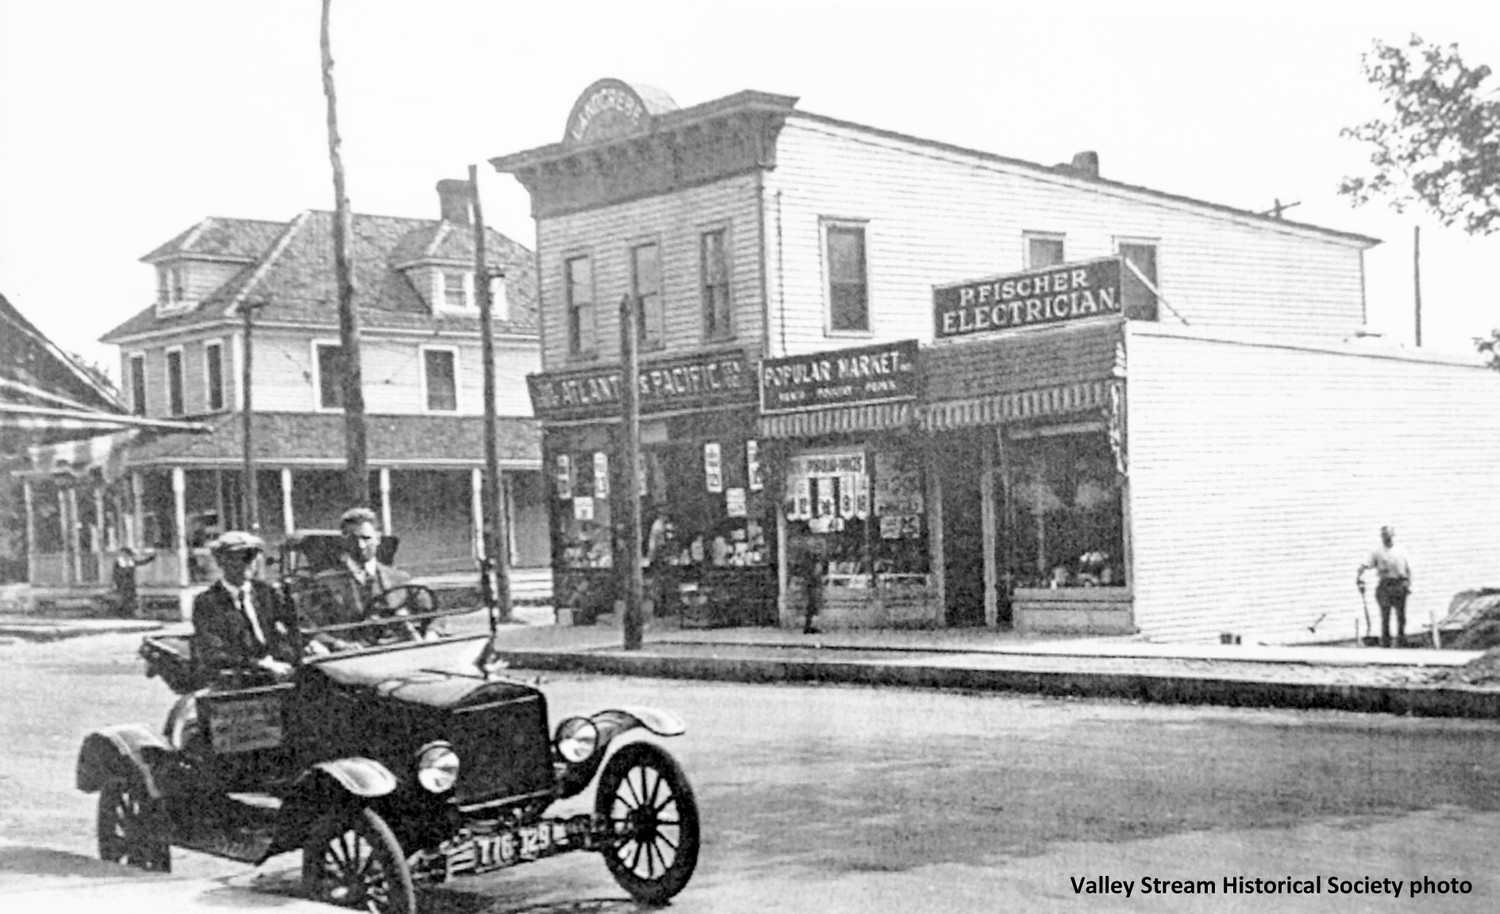 George Schramm's bakery, left, opened in 1910.